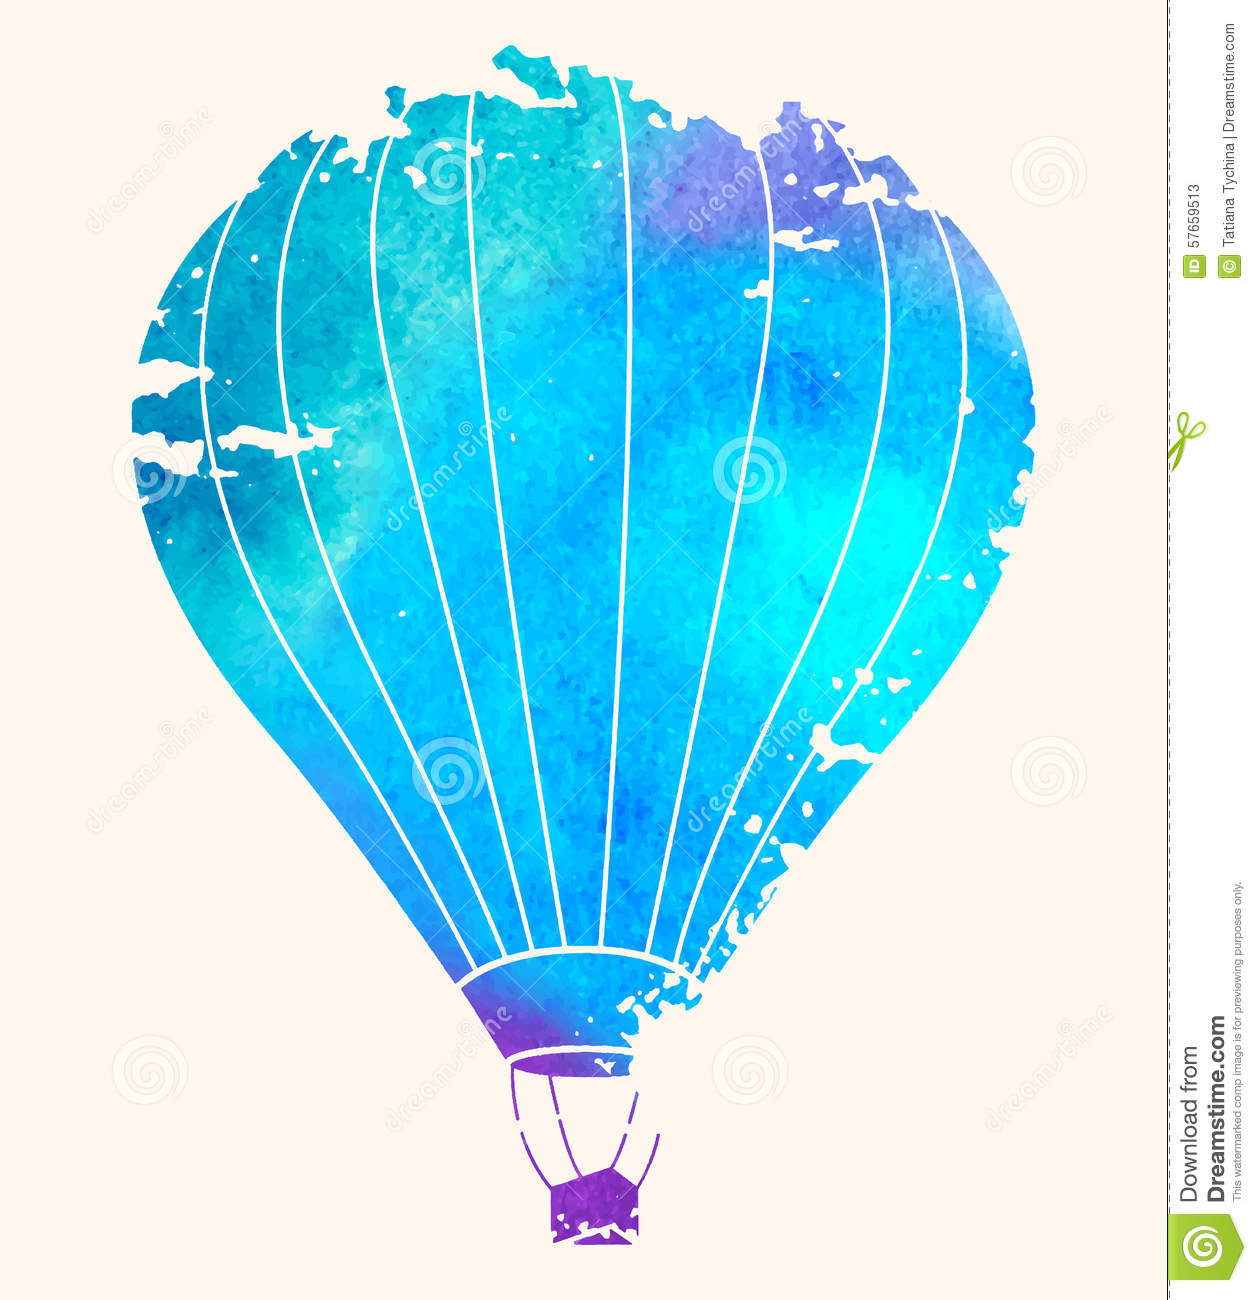 Flying A Hot-Air Balloon images